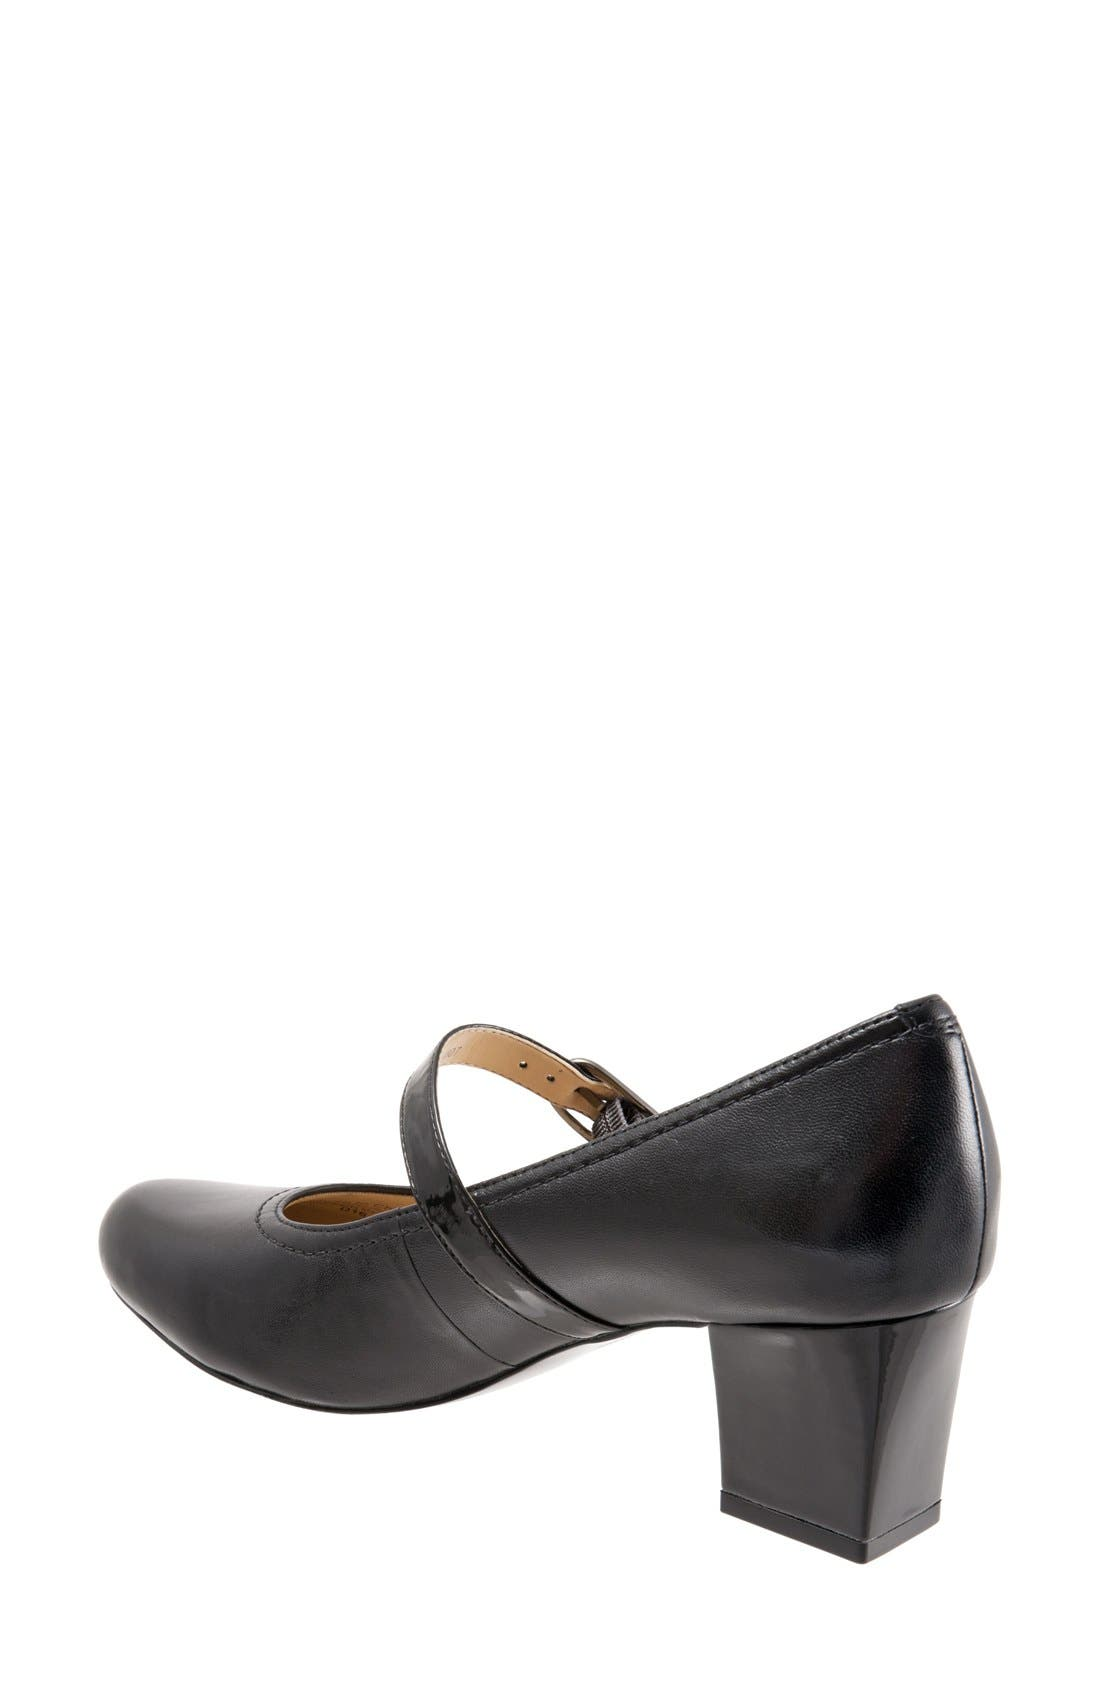 TROTTERS, 'Candice' Mary Jane Pump, Alternate thumbnail 6, color, BLACK LEATHER